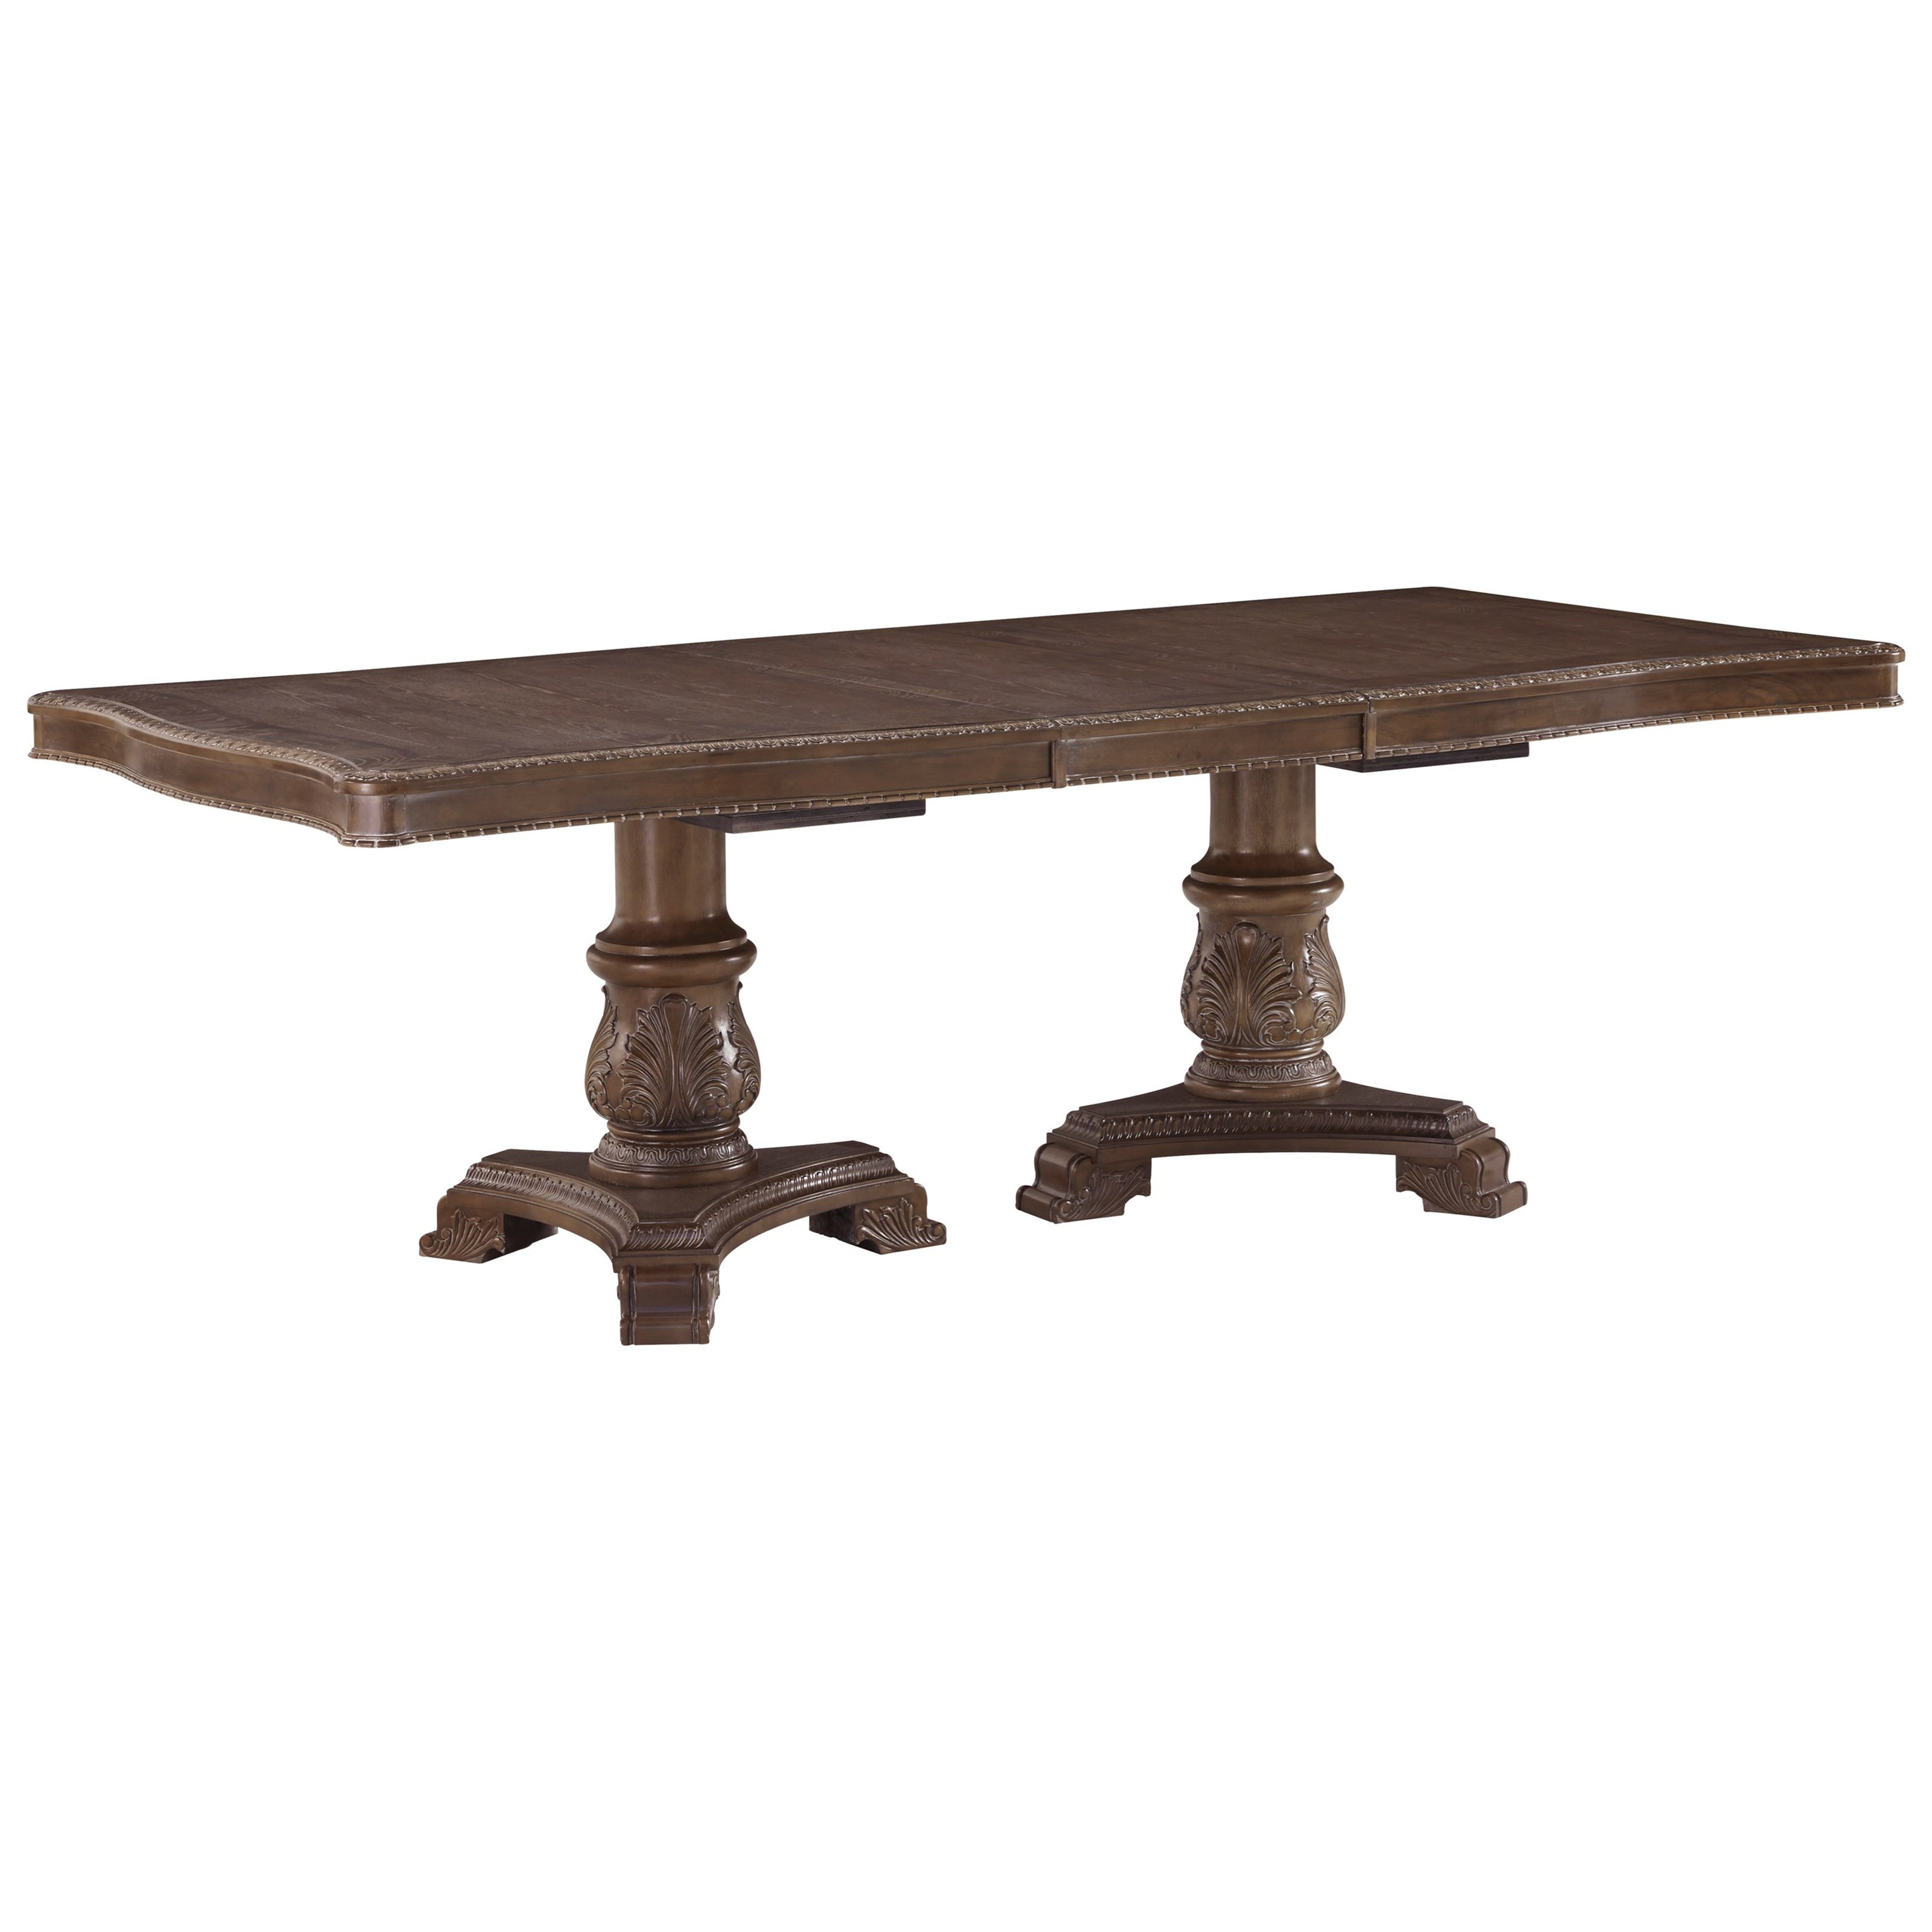 Charmond Rectangular Dining Room Extension Table by Signature Design by Ashley at Beck's Furniture